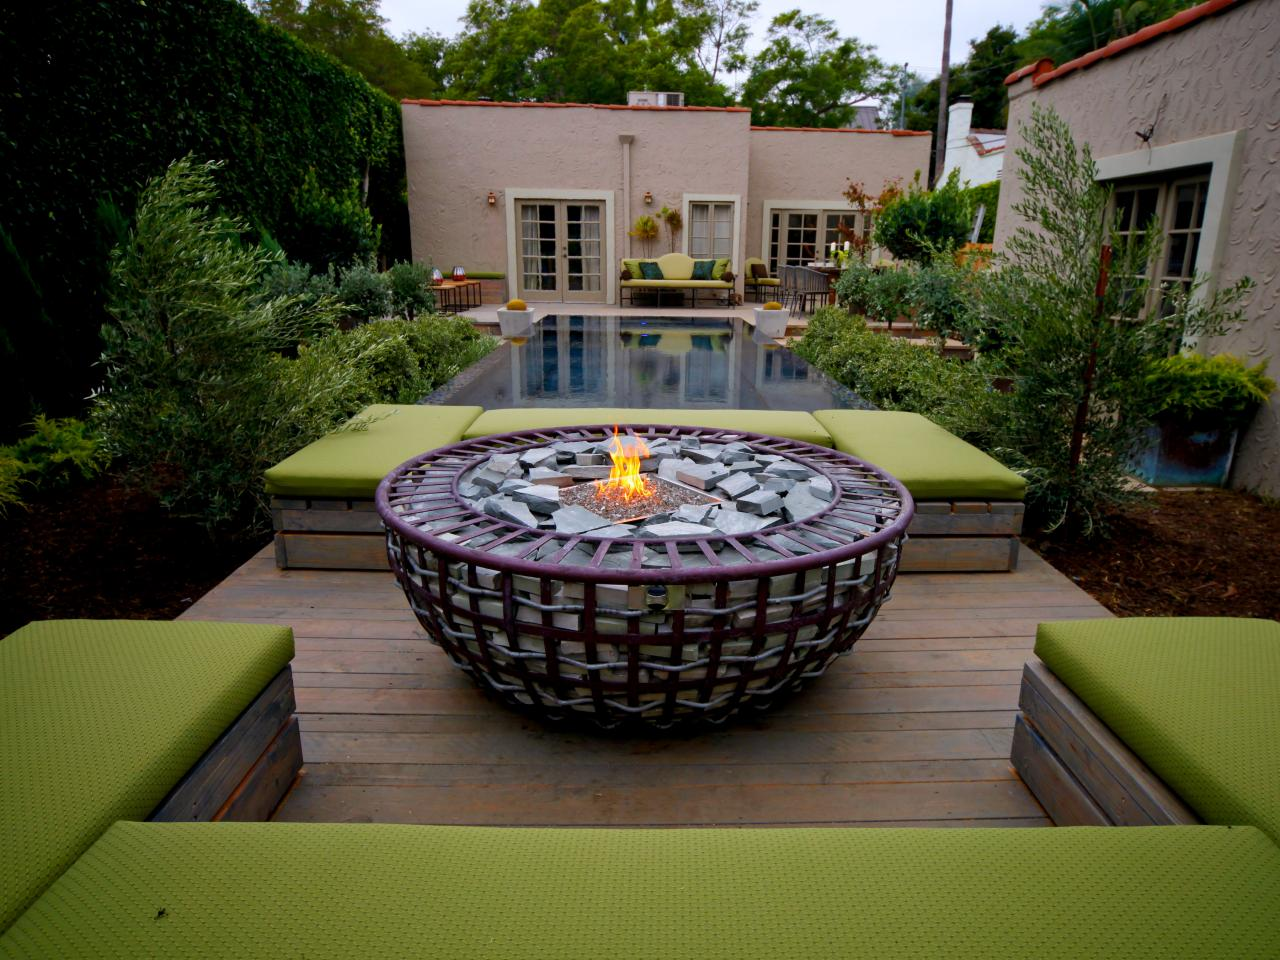 50 Best Outdoor Fire Pit Design Ideas for 2019 on Small Outdoor Fireplace Ideas id=96251